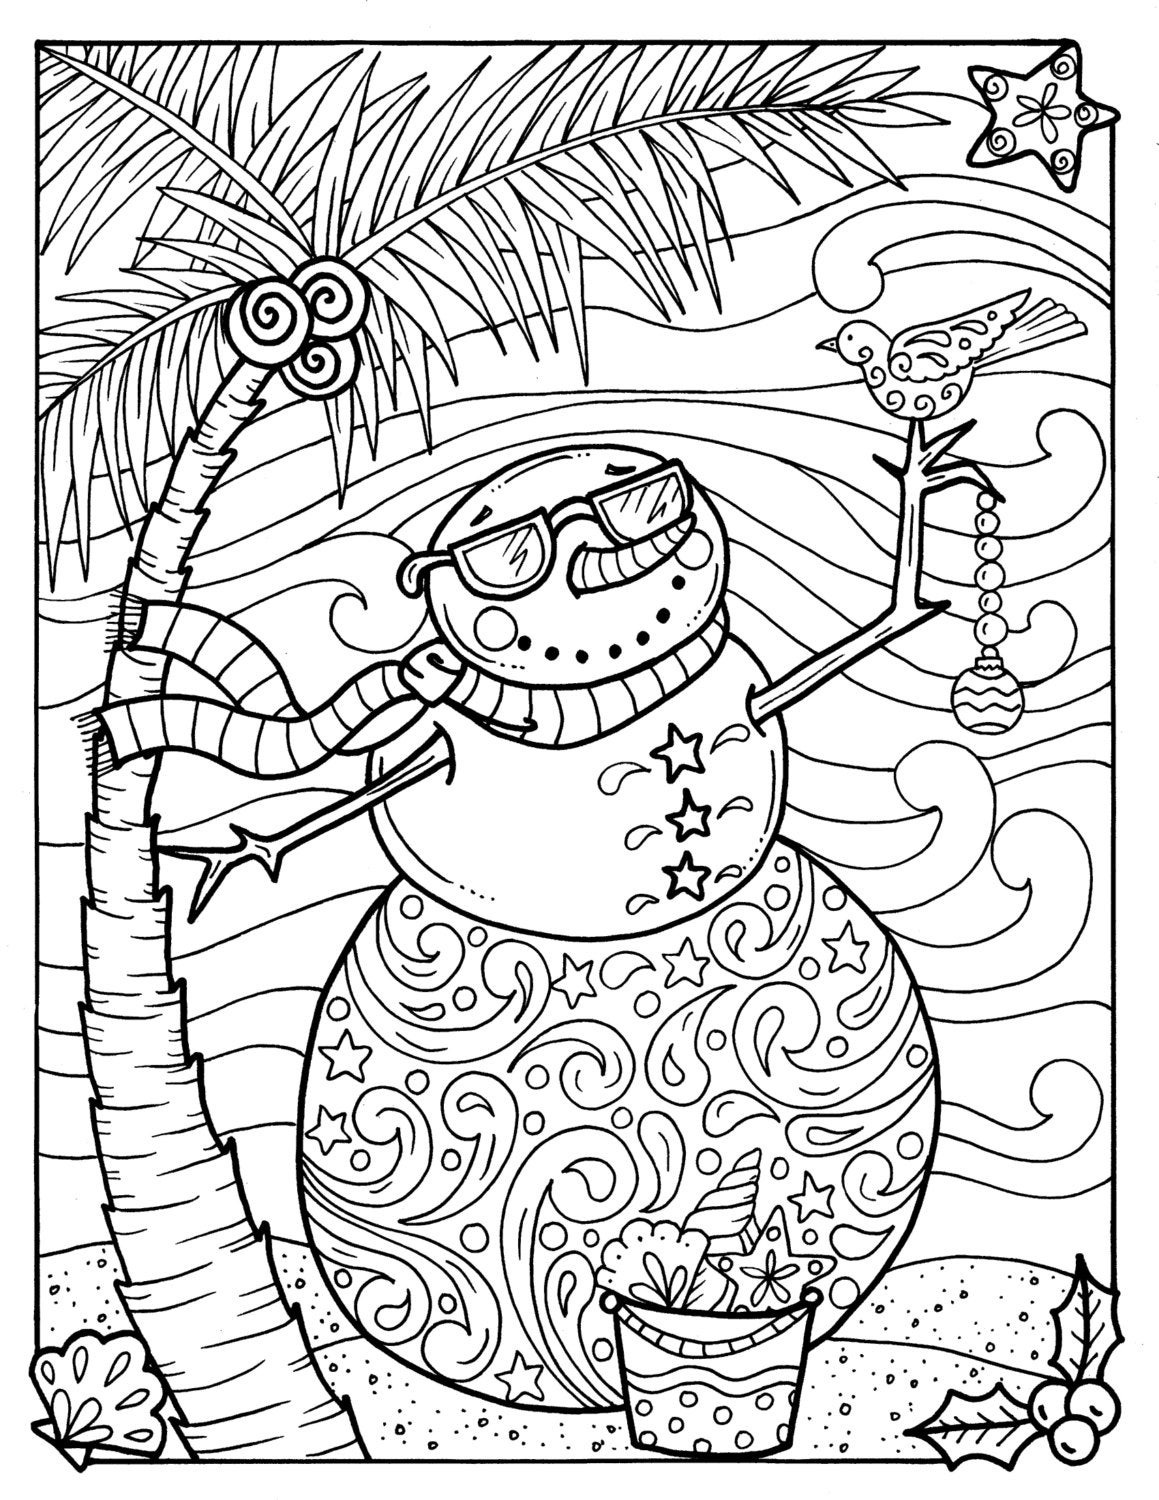 tropical snowman coloring page adult coloring beach holidays